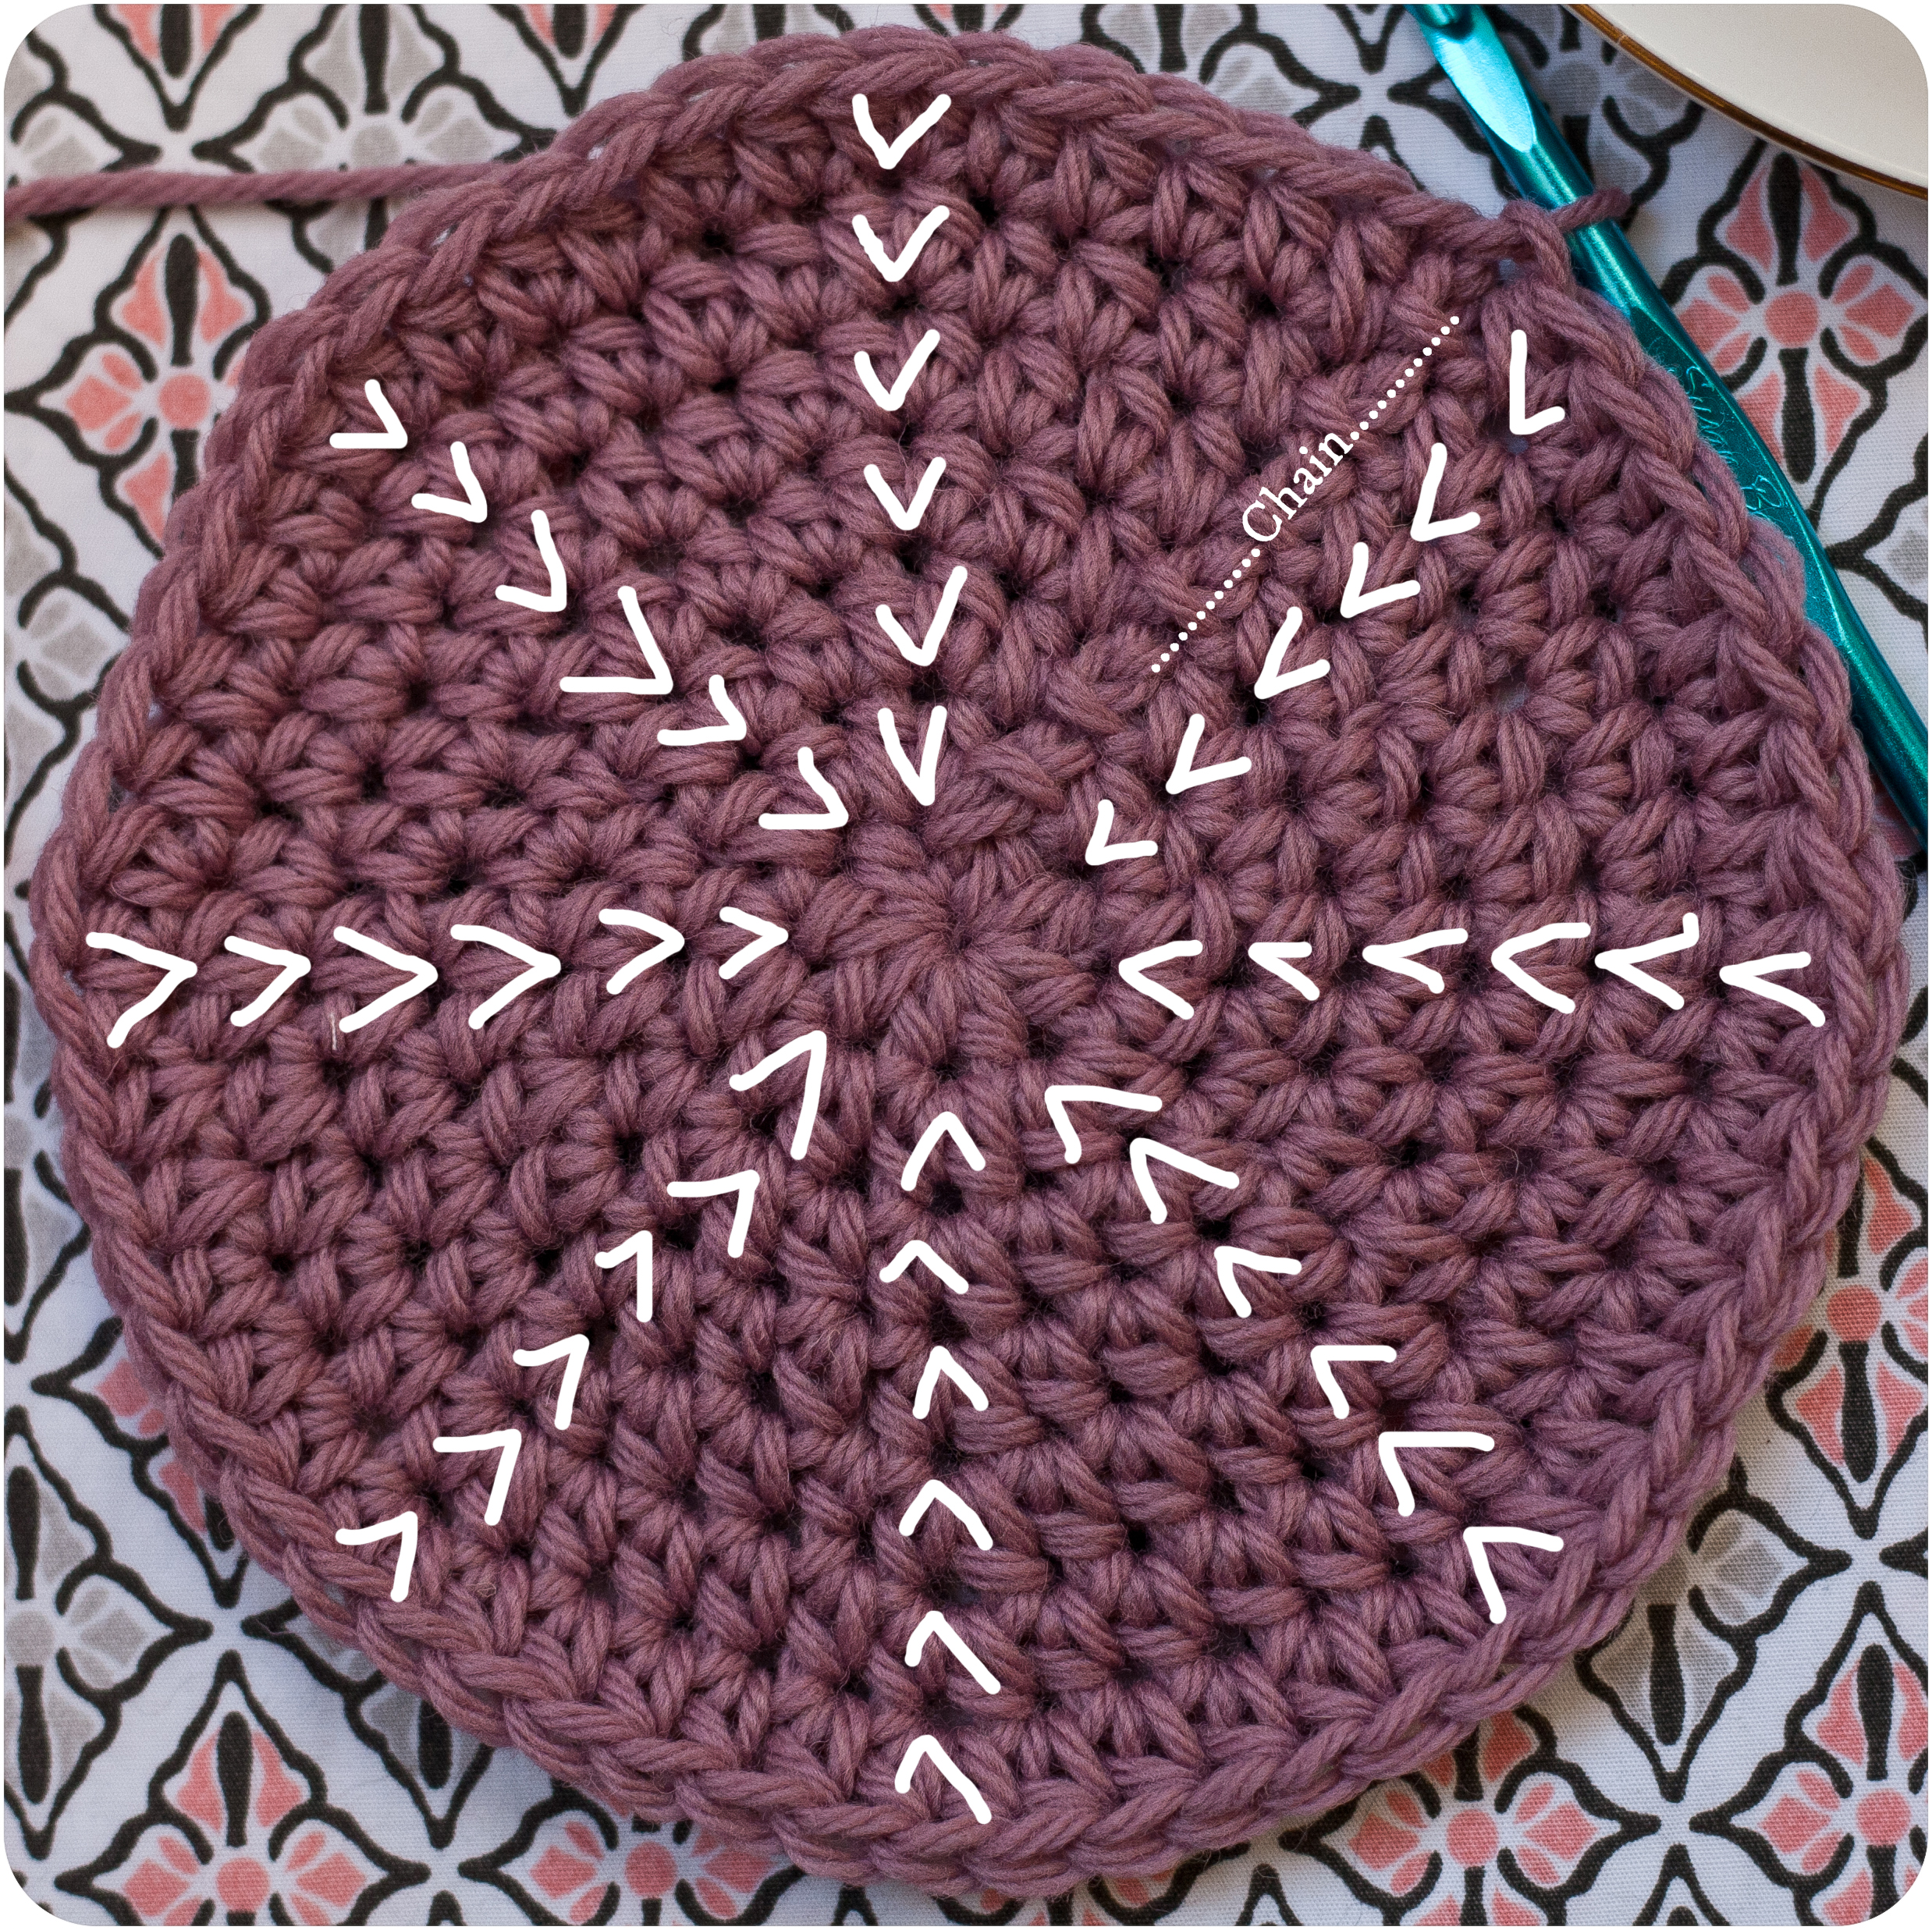 Crochet Circle : Crocheting a Flat Circle - Slugs On The Refrigerator - UK Crochet ...